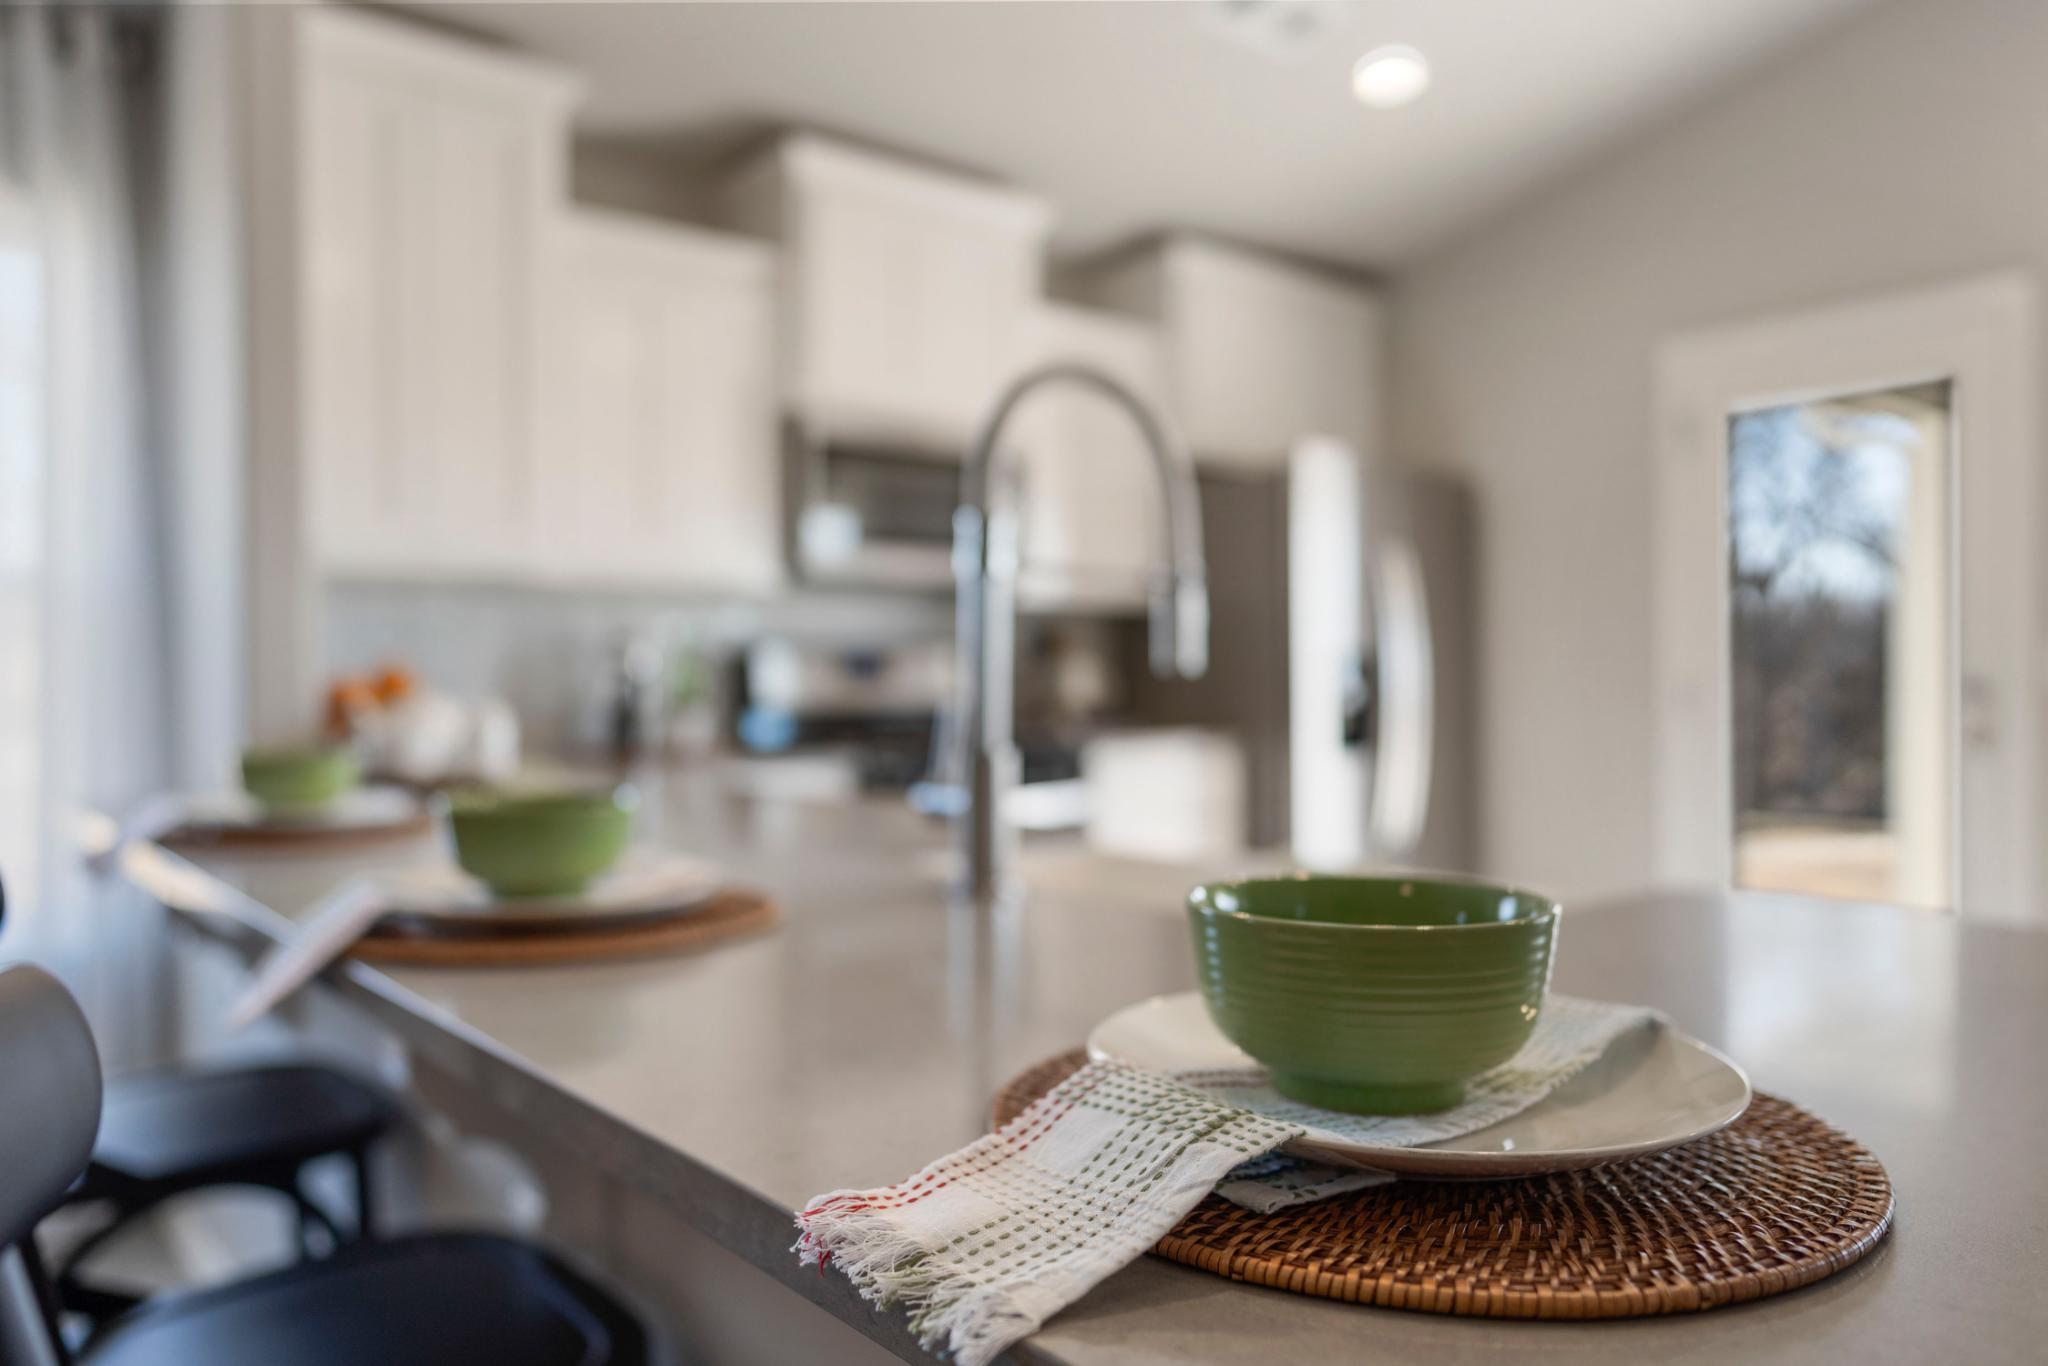 Kitchen featured in the Tahoe By Capital Homes in Tulsa, OK